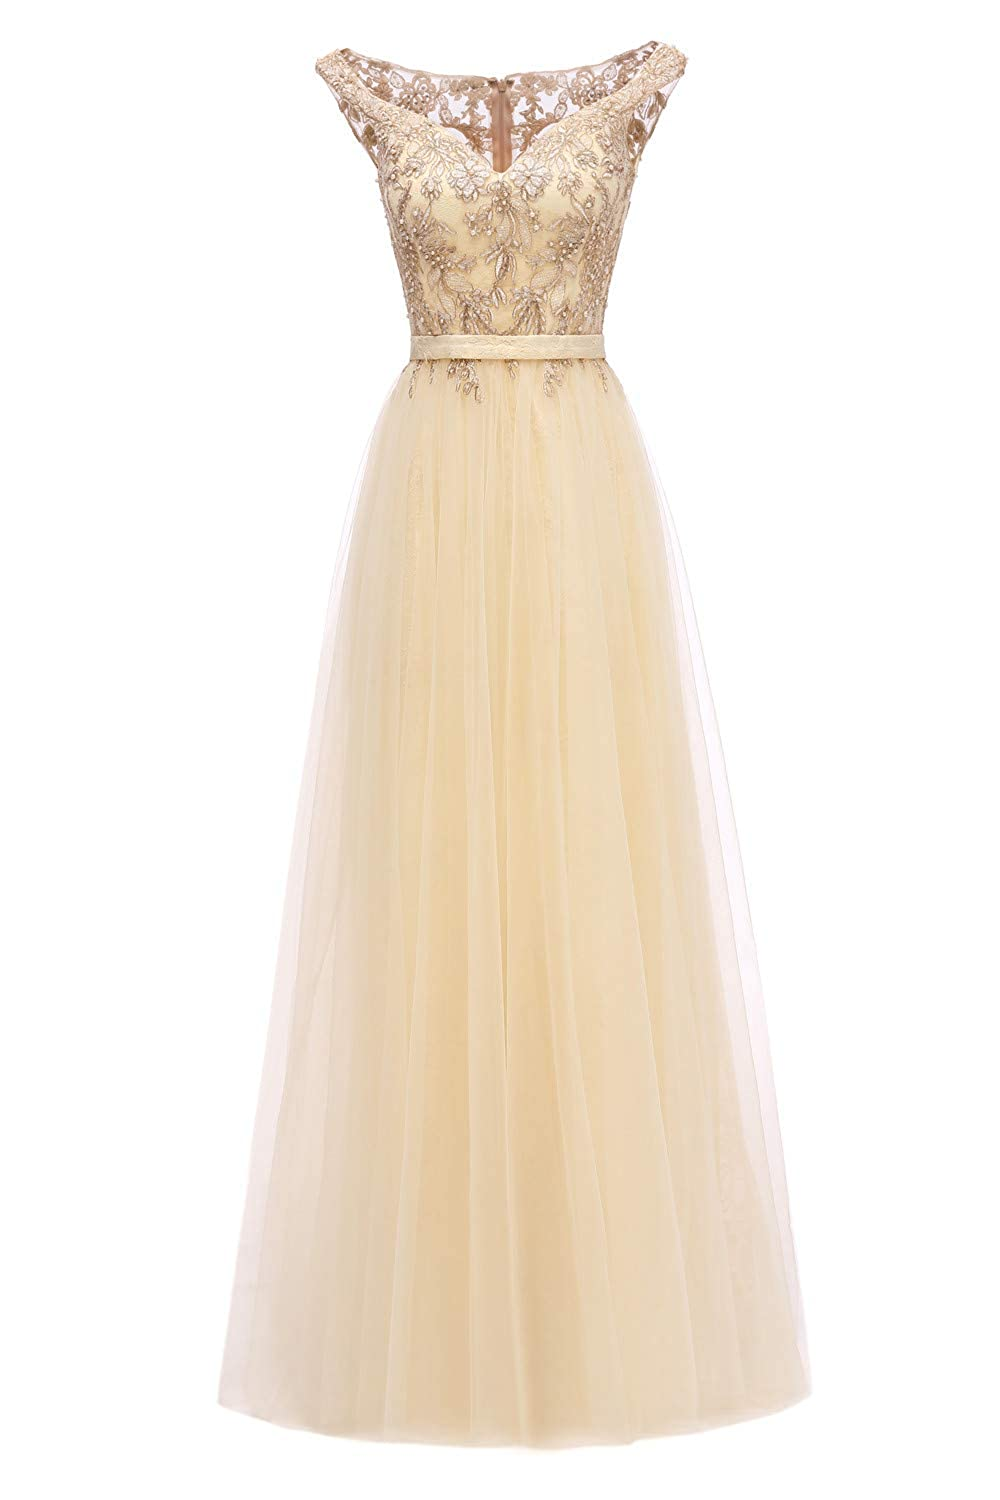 Champagne Huifany Womens VNeck Cap Sleeve Lace Prom Bridesmaid Dresses Long Formal Evening Ball Gowns